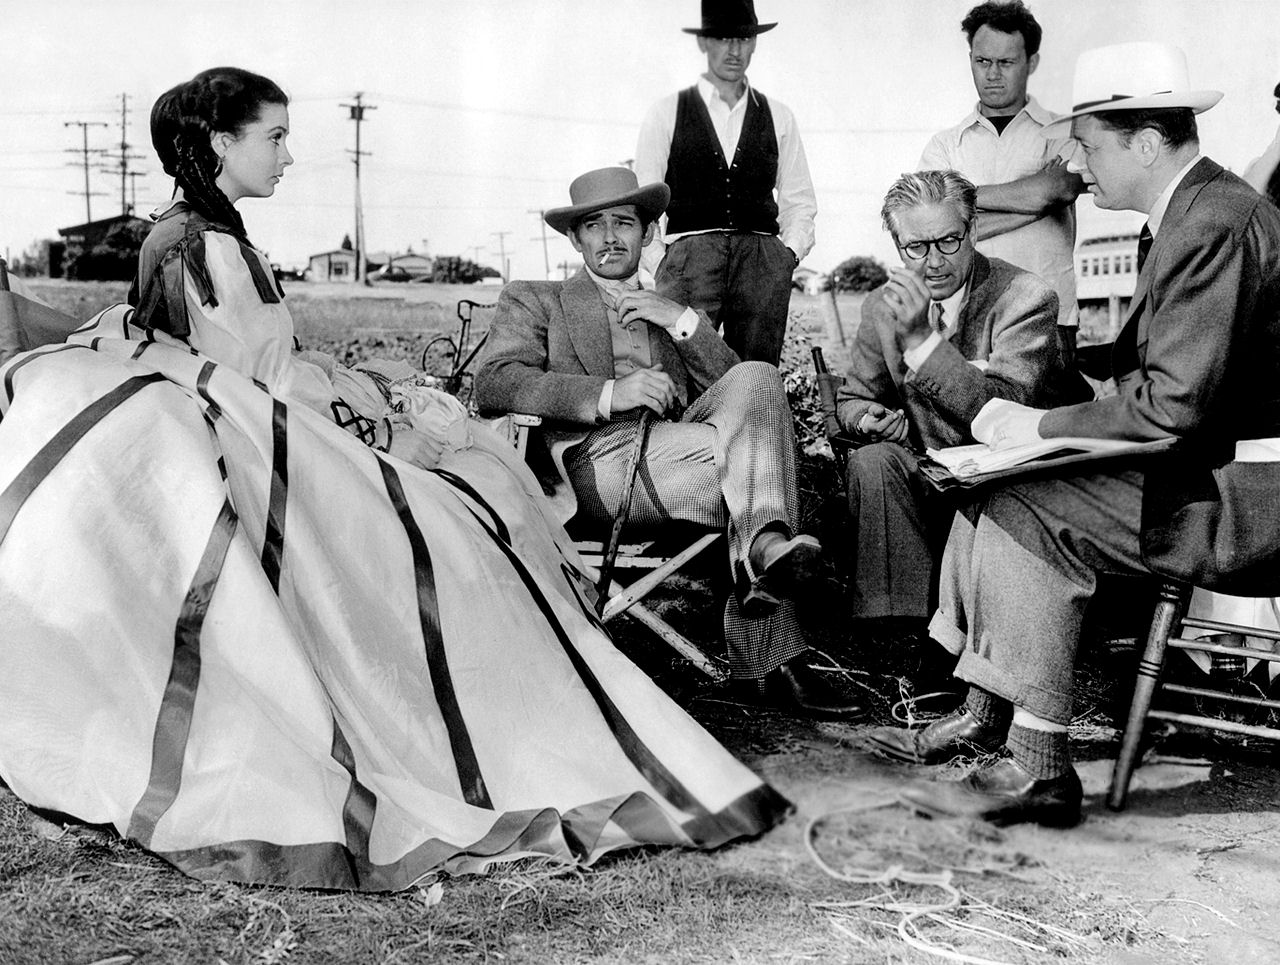 photo tournage coulisse cinema GoneWithTheWind 10 Photos sur des tournages de films #2  photo featured cinema 2 bonus